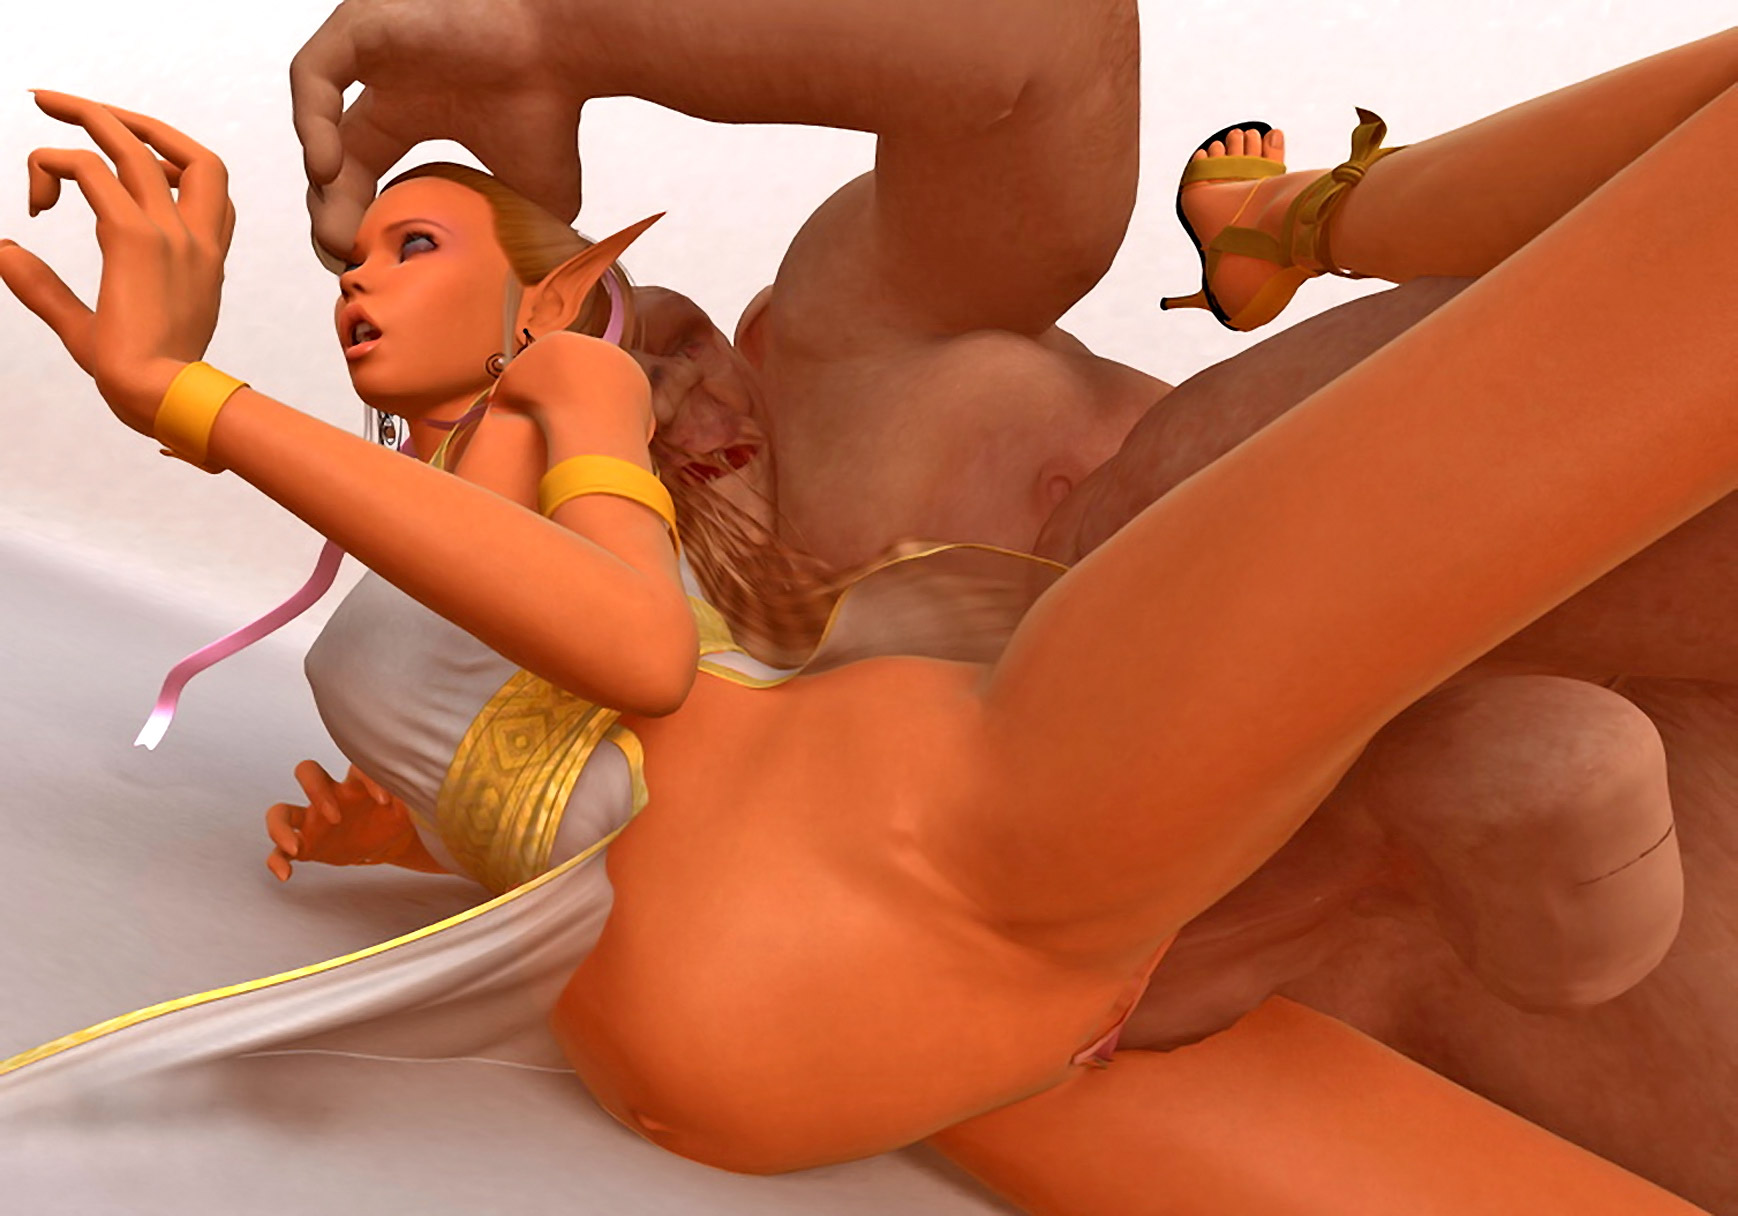 Elf hentai sex 3d porno erotic picture